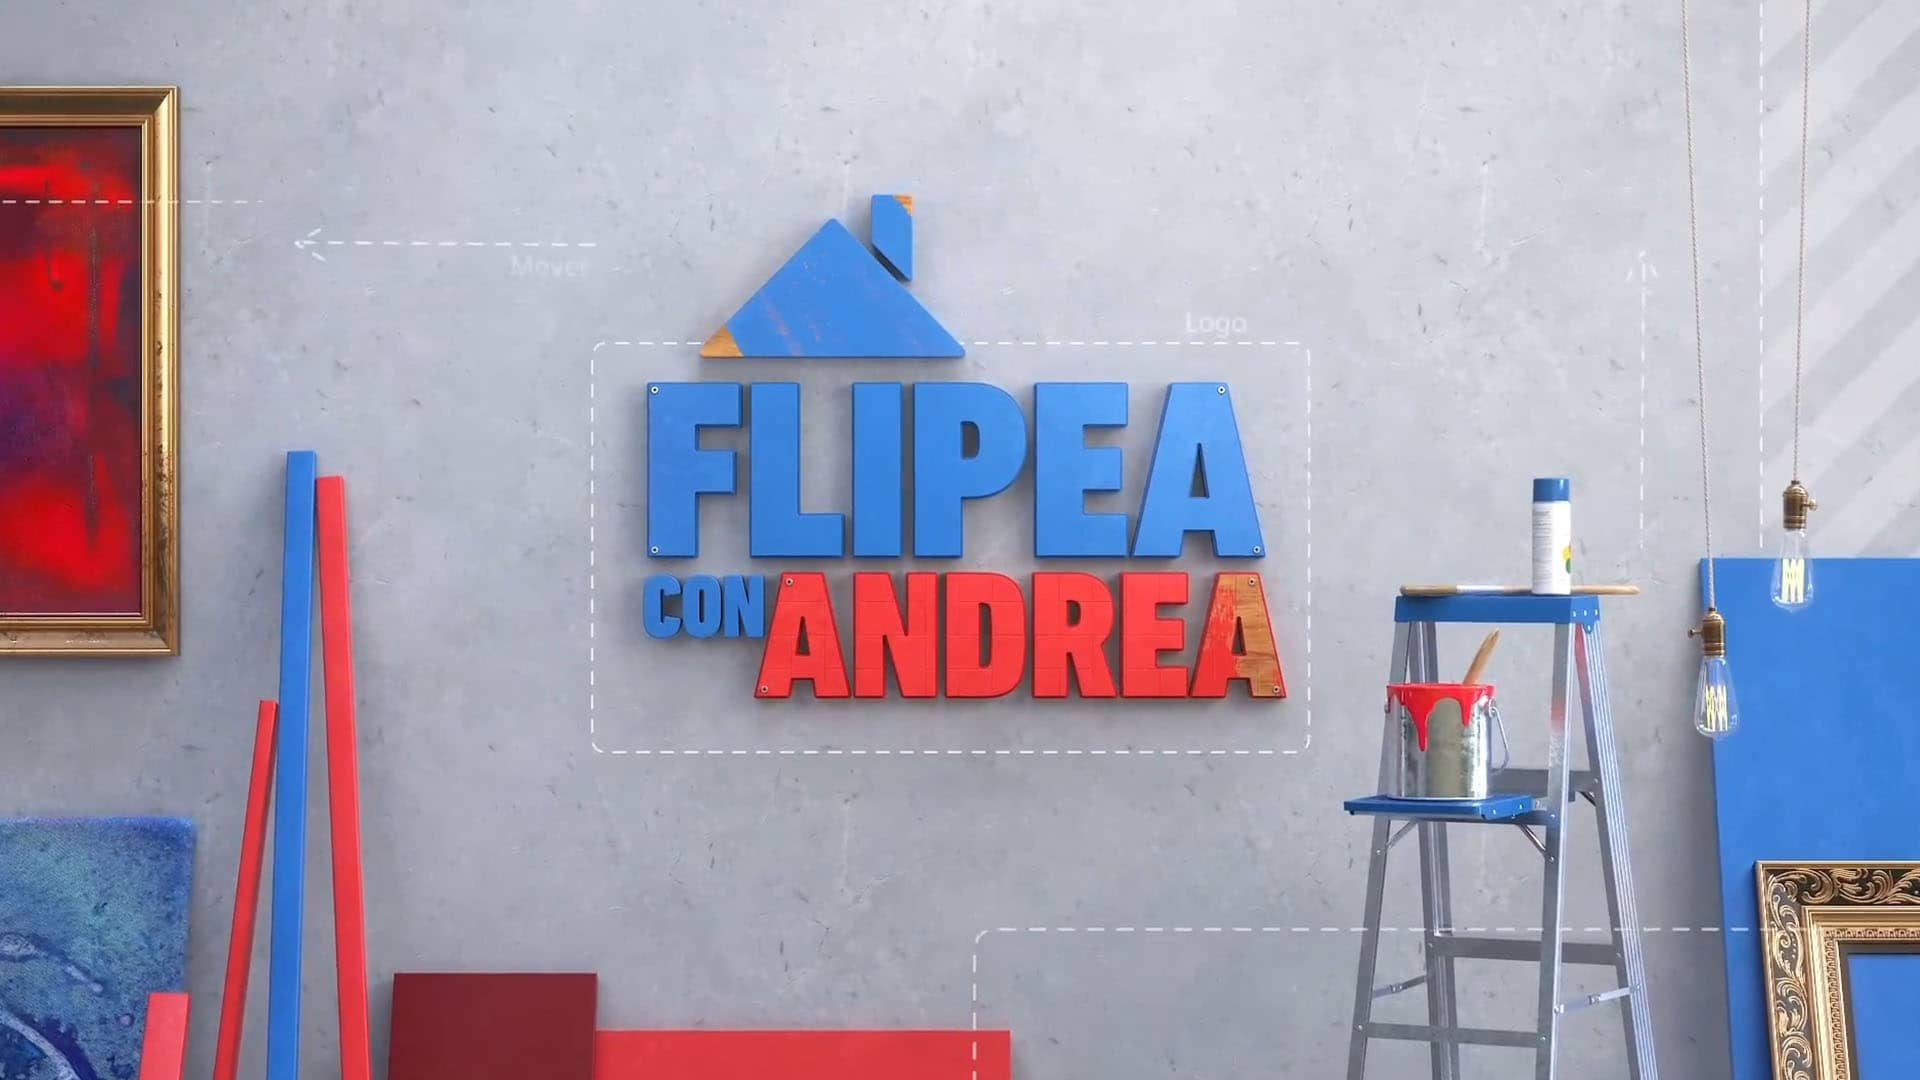 Flipea con Andrea intro | a room with various decor elements: wood panels, light bubbles, paint, folding ladder, paintings